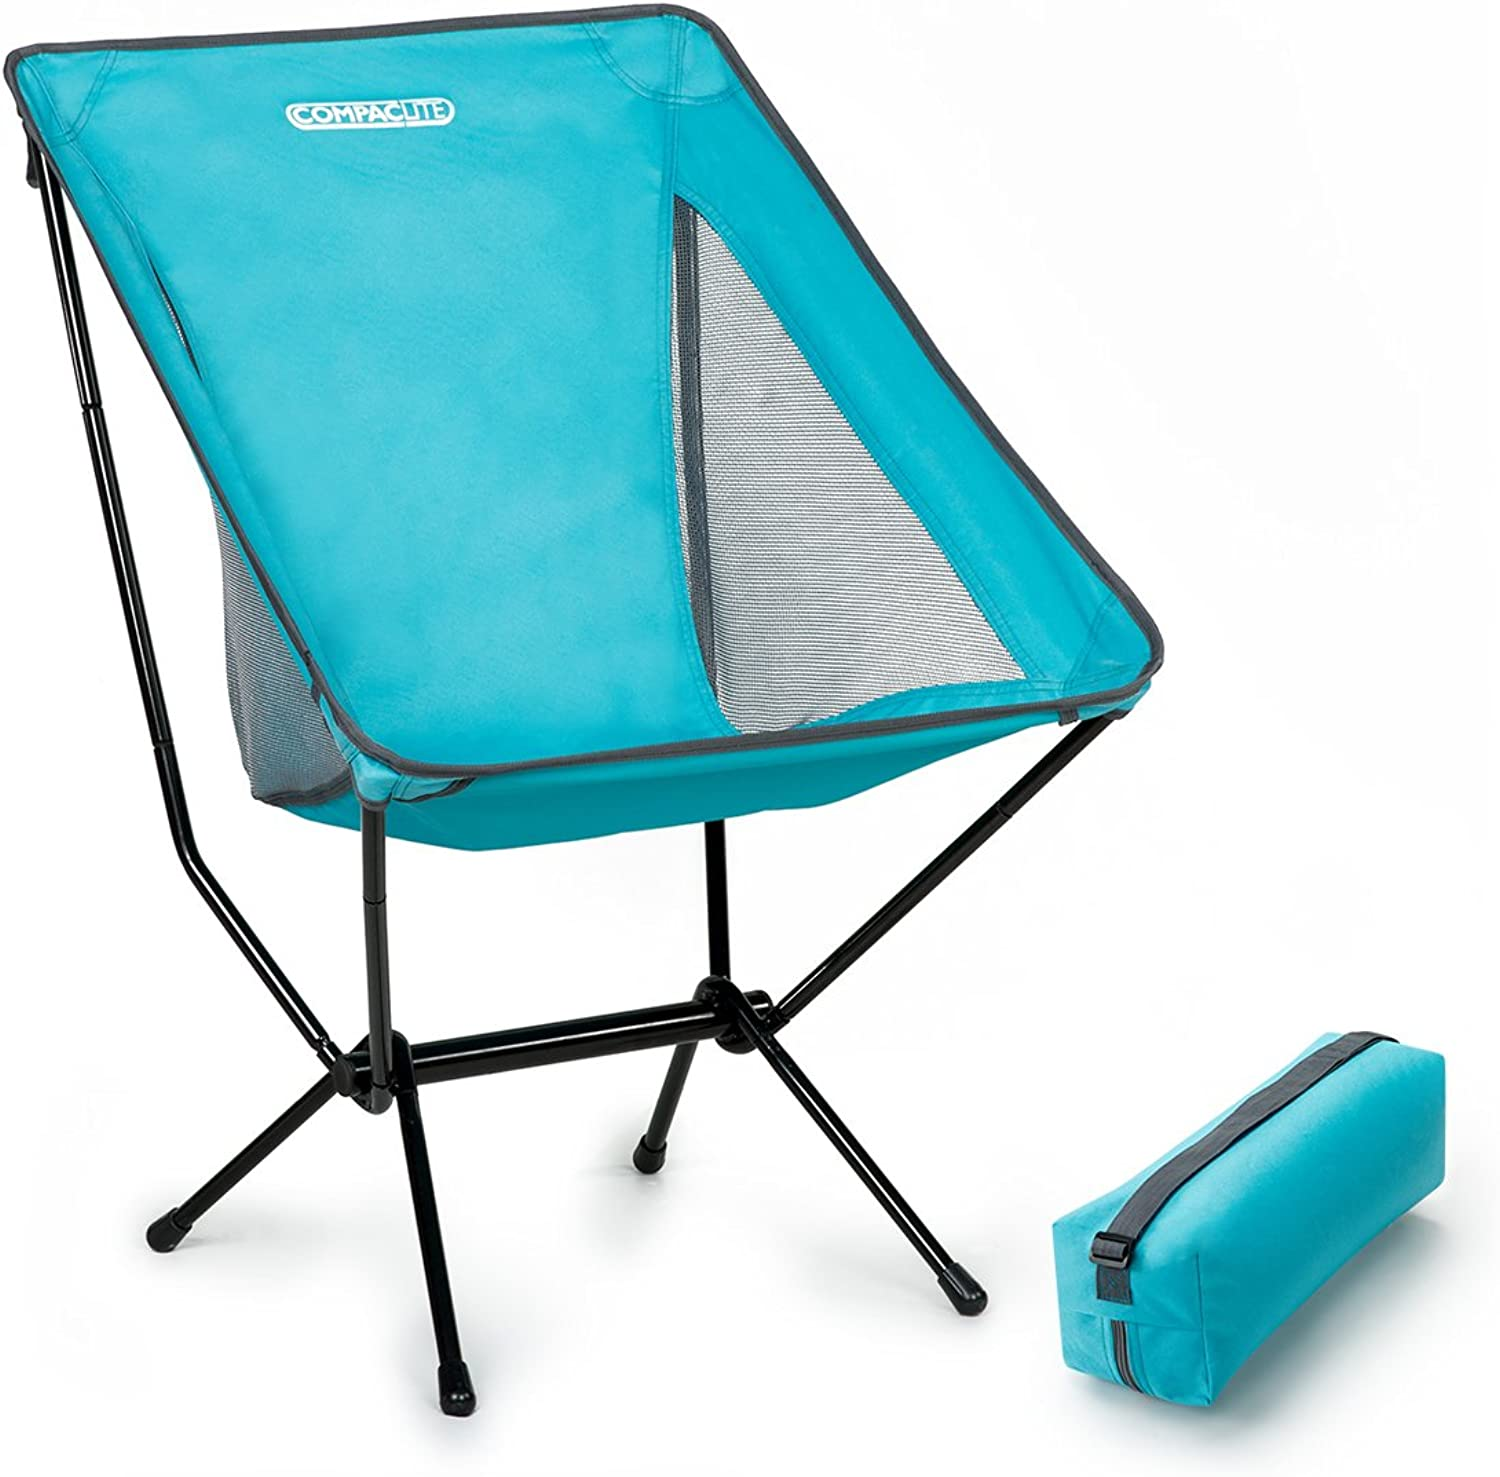 Compaclite Steel Camping Portable Chair with mesh Side Panels and Carry Bag, Deluxe - Bright bluee